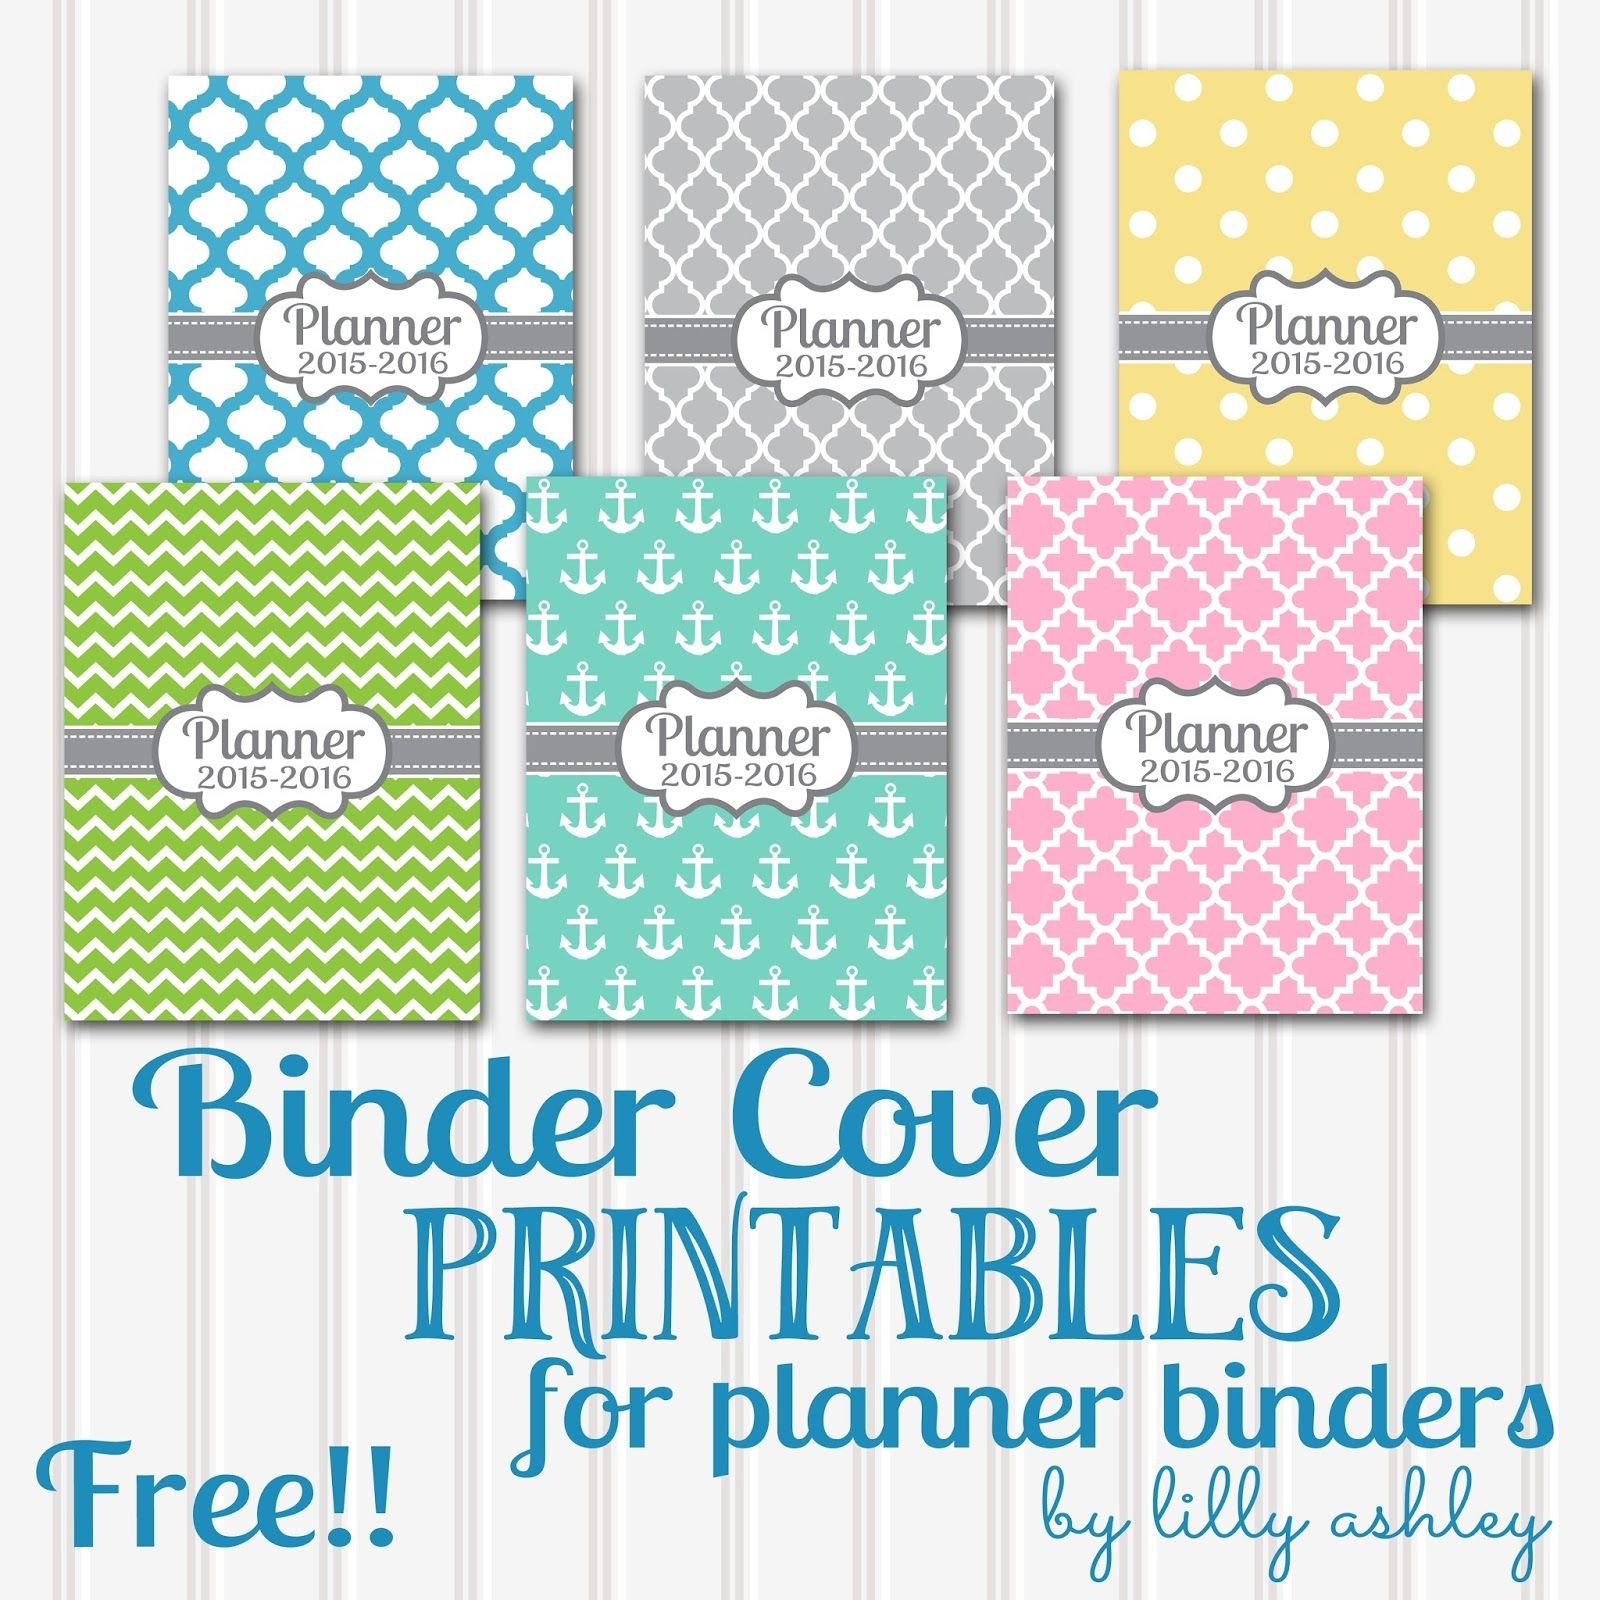 Free Printable Planner Coverssix Styles! | Planners And - Free Printable Binder Covers And Spines